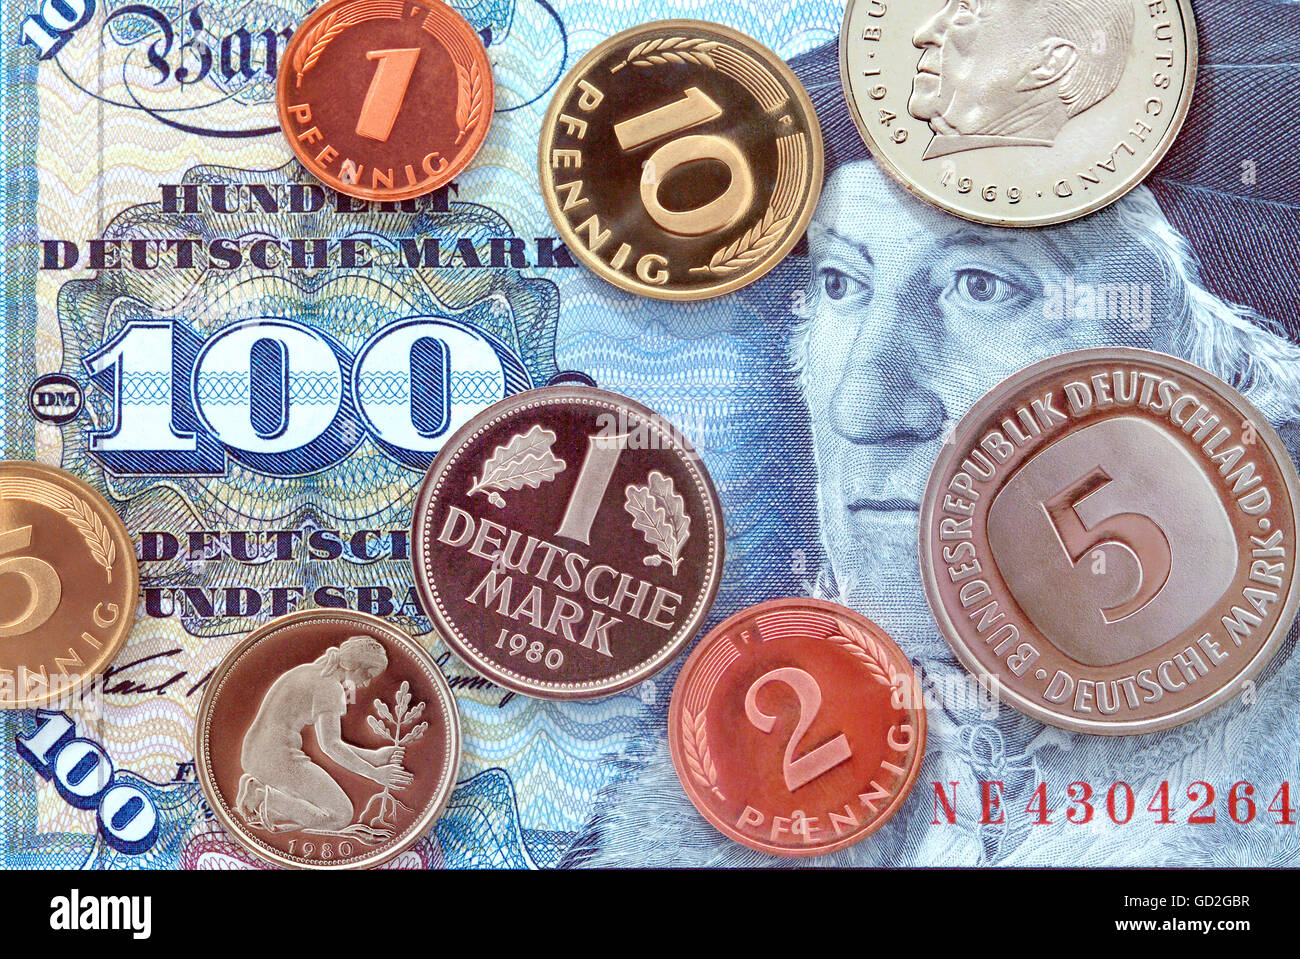 money / finances,coins,Germany,German Mark,100 Mark banknote,valid from 1950 until 2001,coins year of minting: 1980,penny,hundred Stock Photo